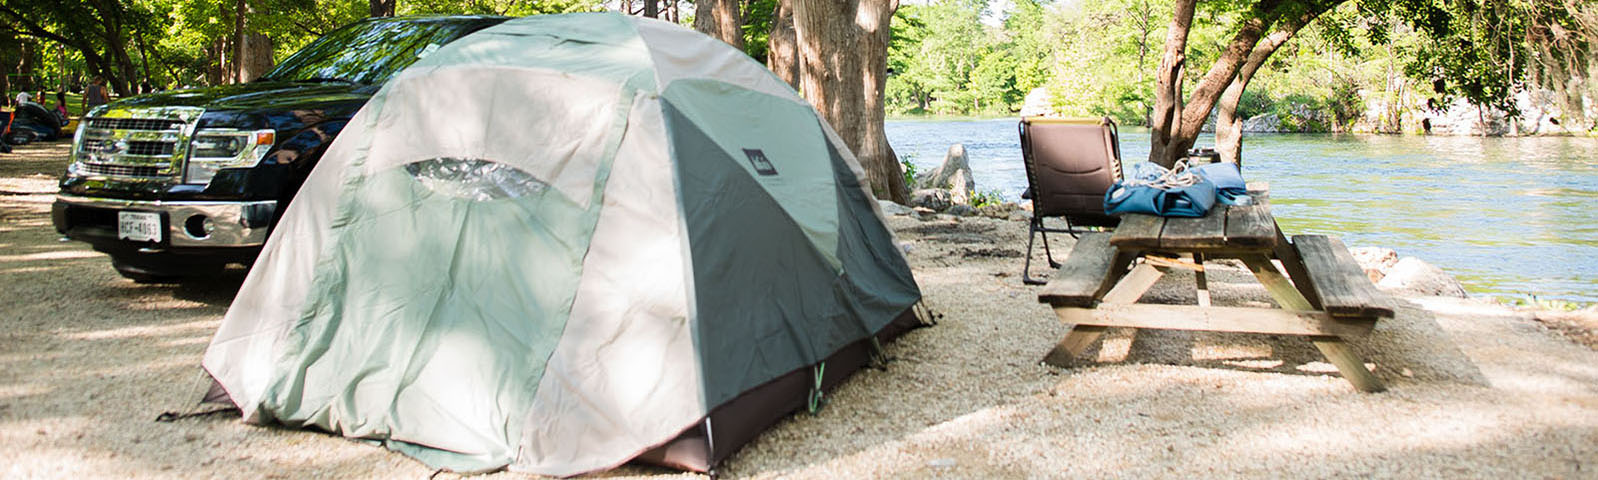 tent-river